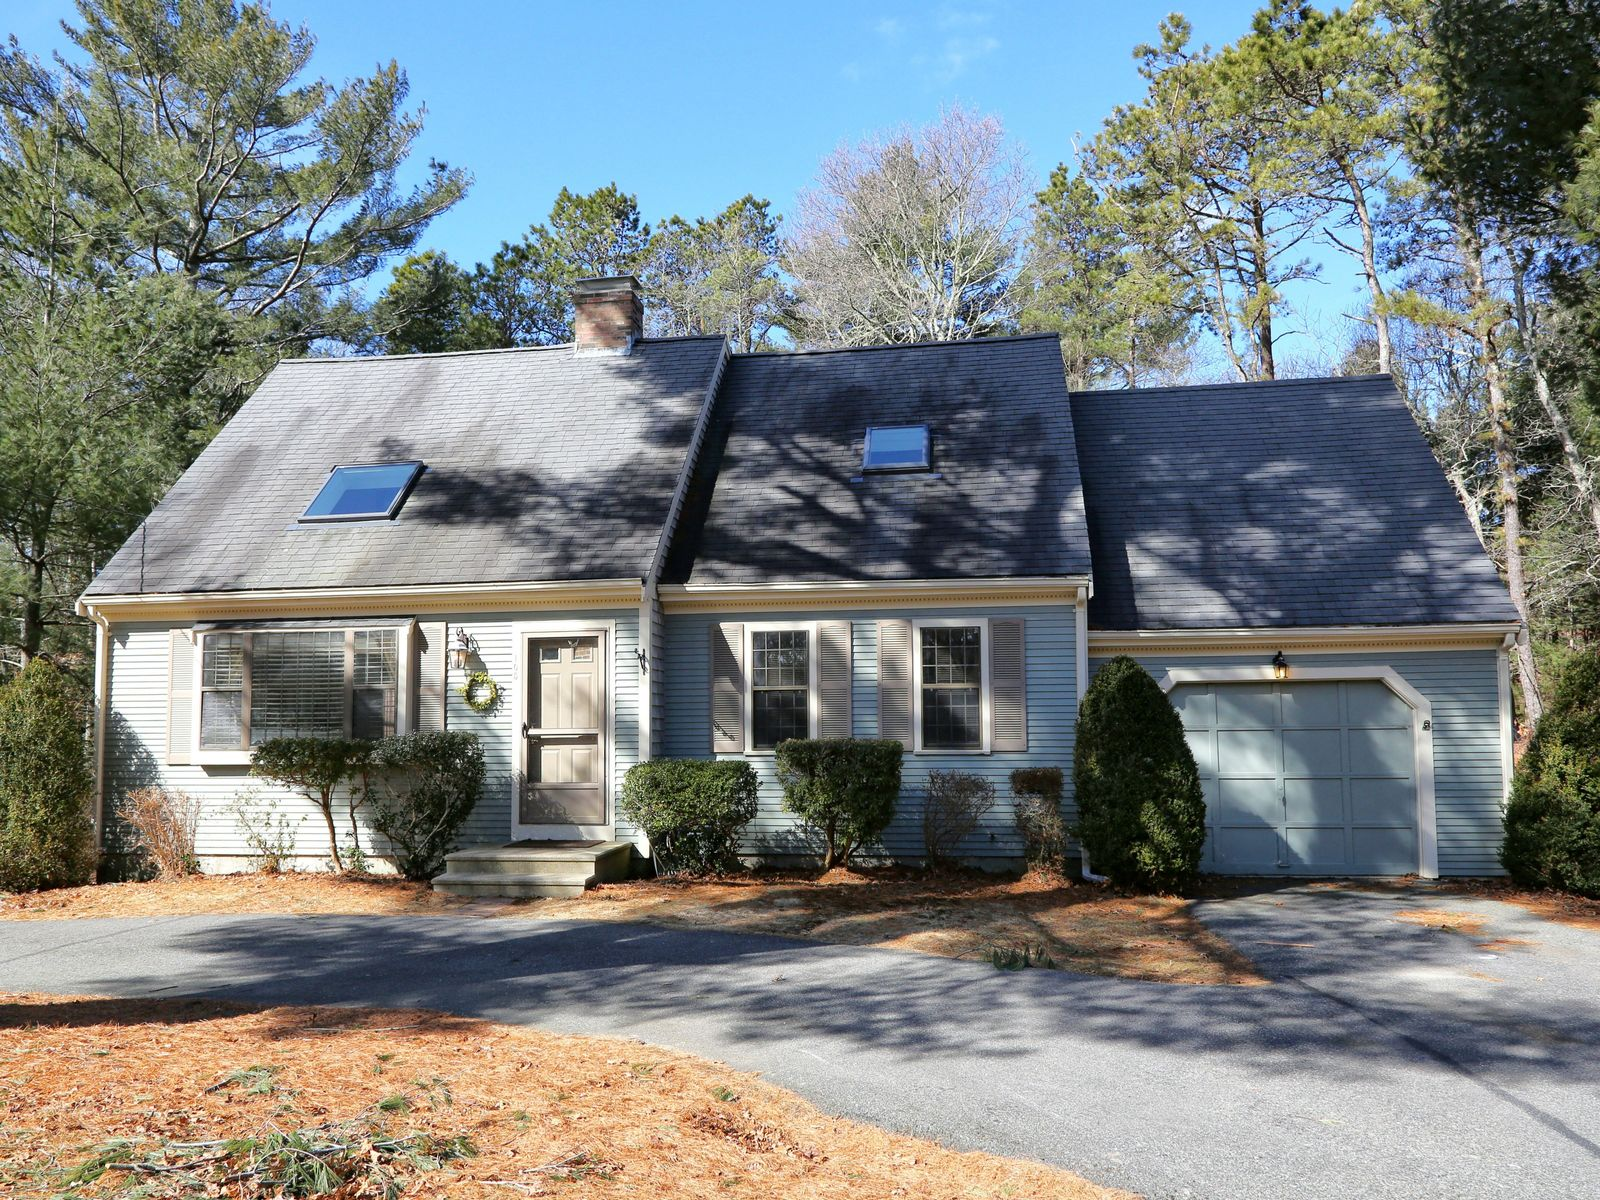 Bright and Airy Cape, Marstons Mills MA Single Family Home - Cape Cod Real Estate